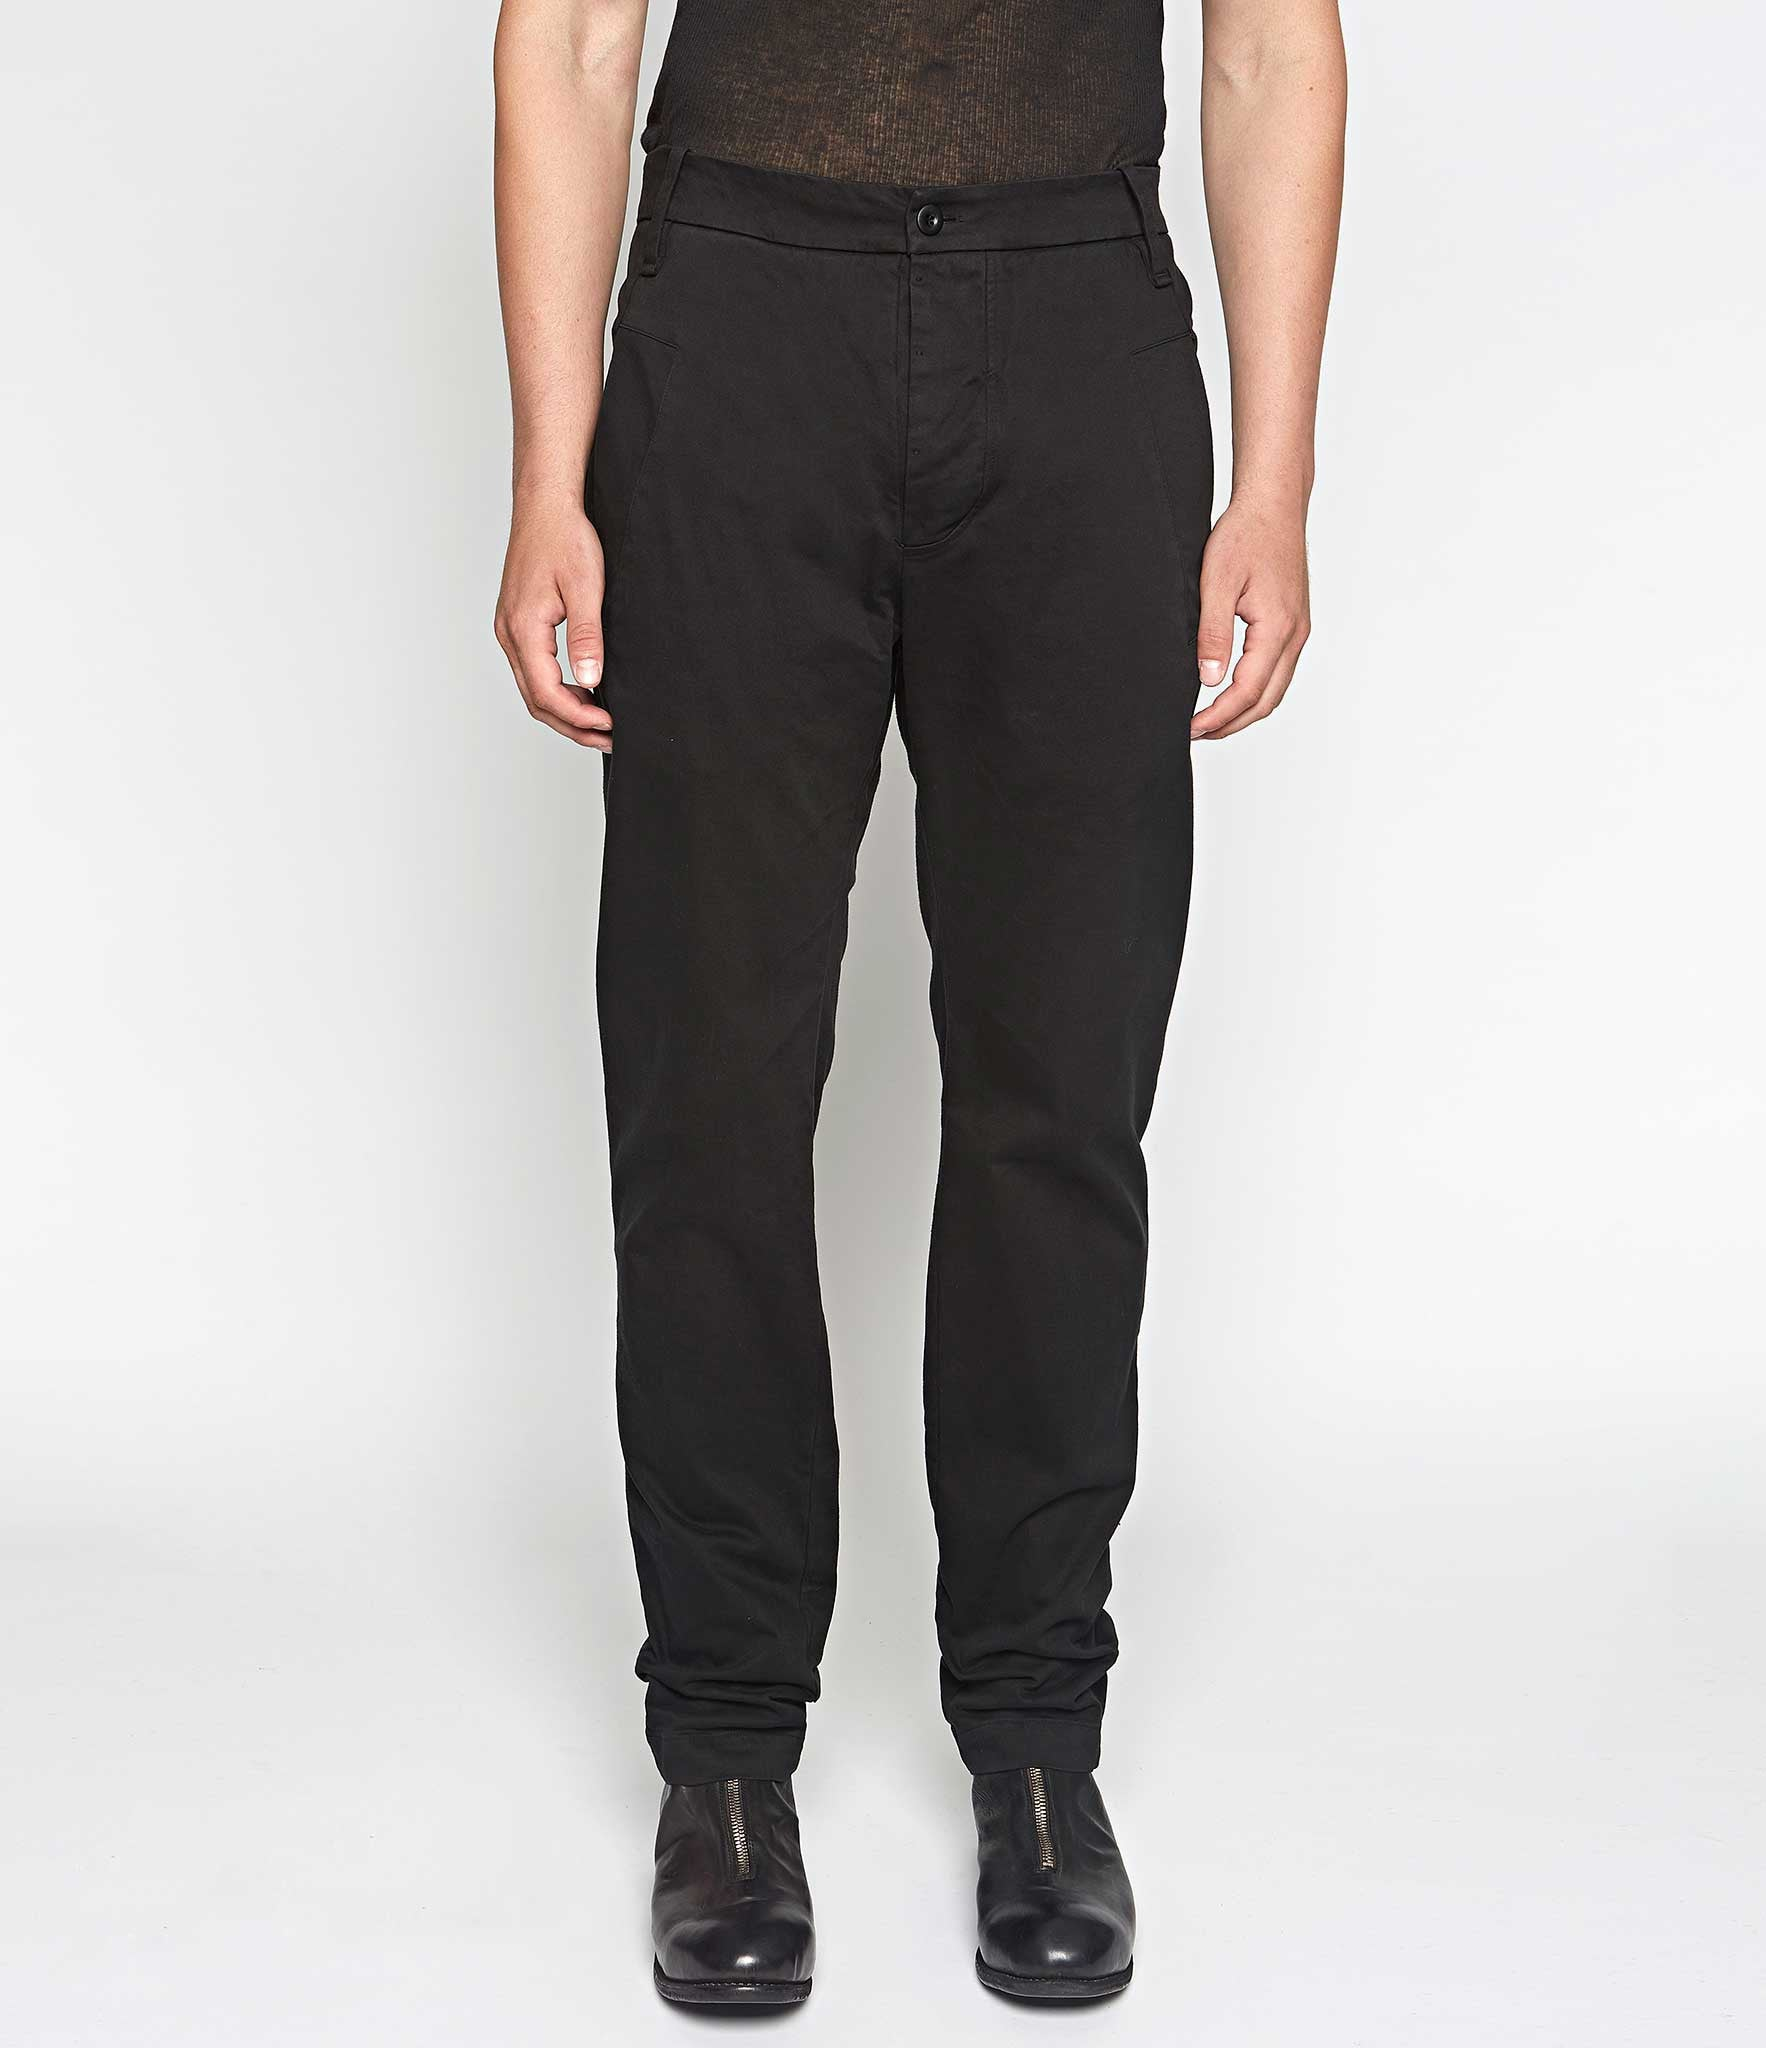 Lost & Found Rooms Slim Black Cotton Stretch Pants